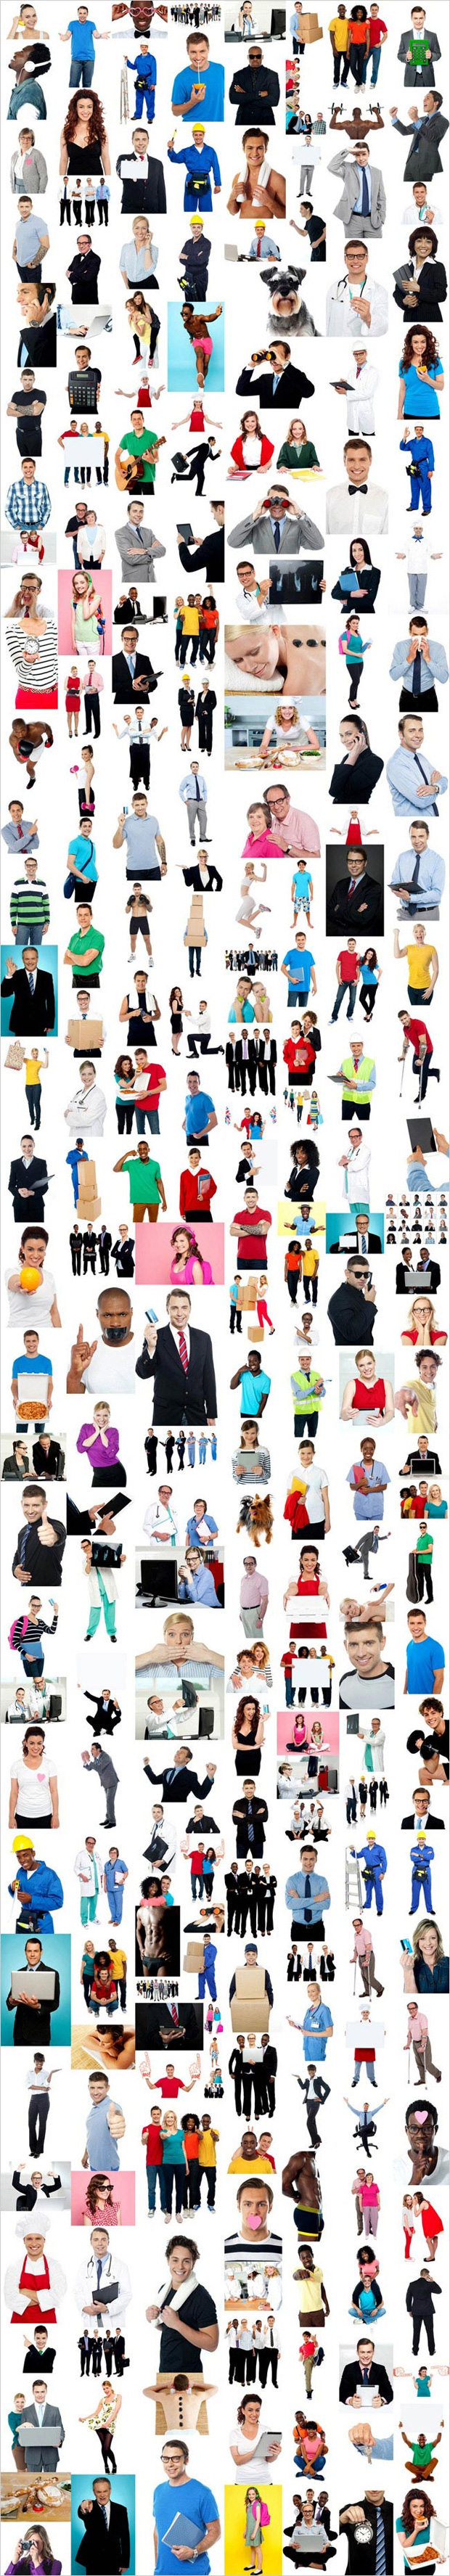 1.000 High-Quality Professional Stock Images